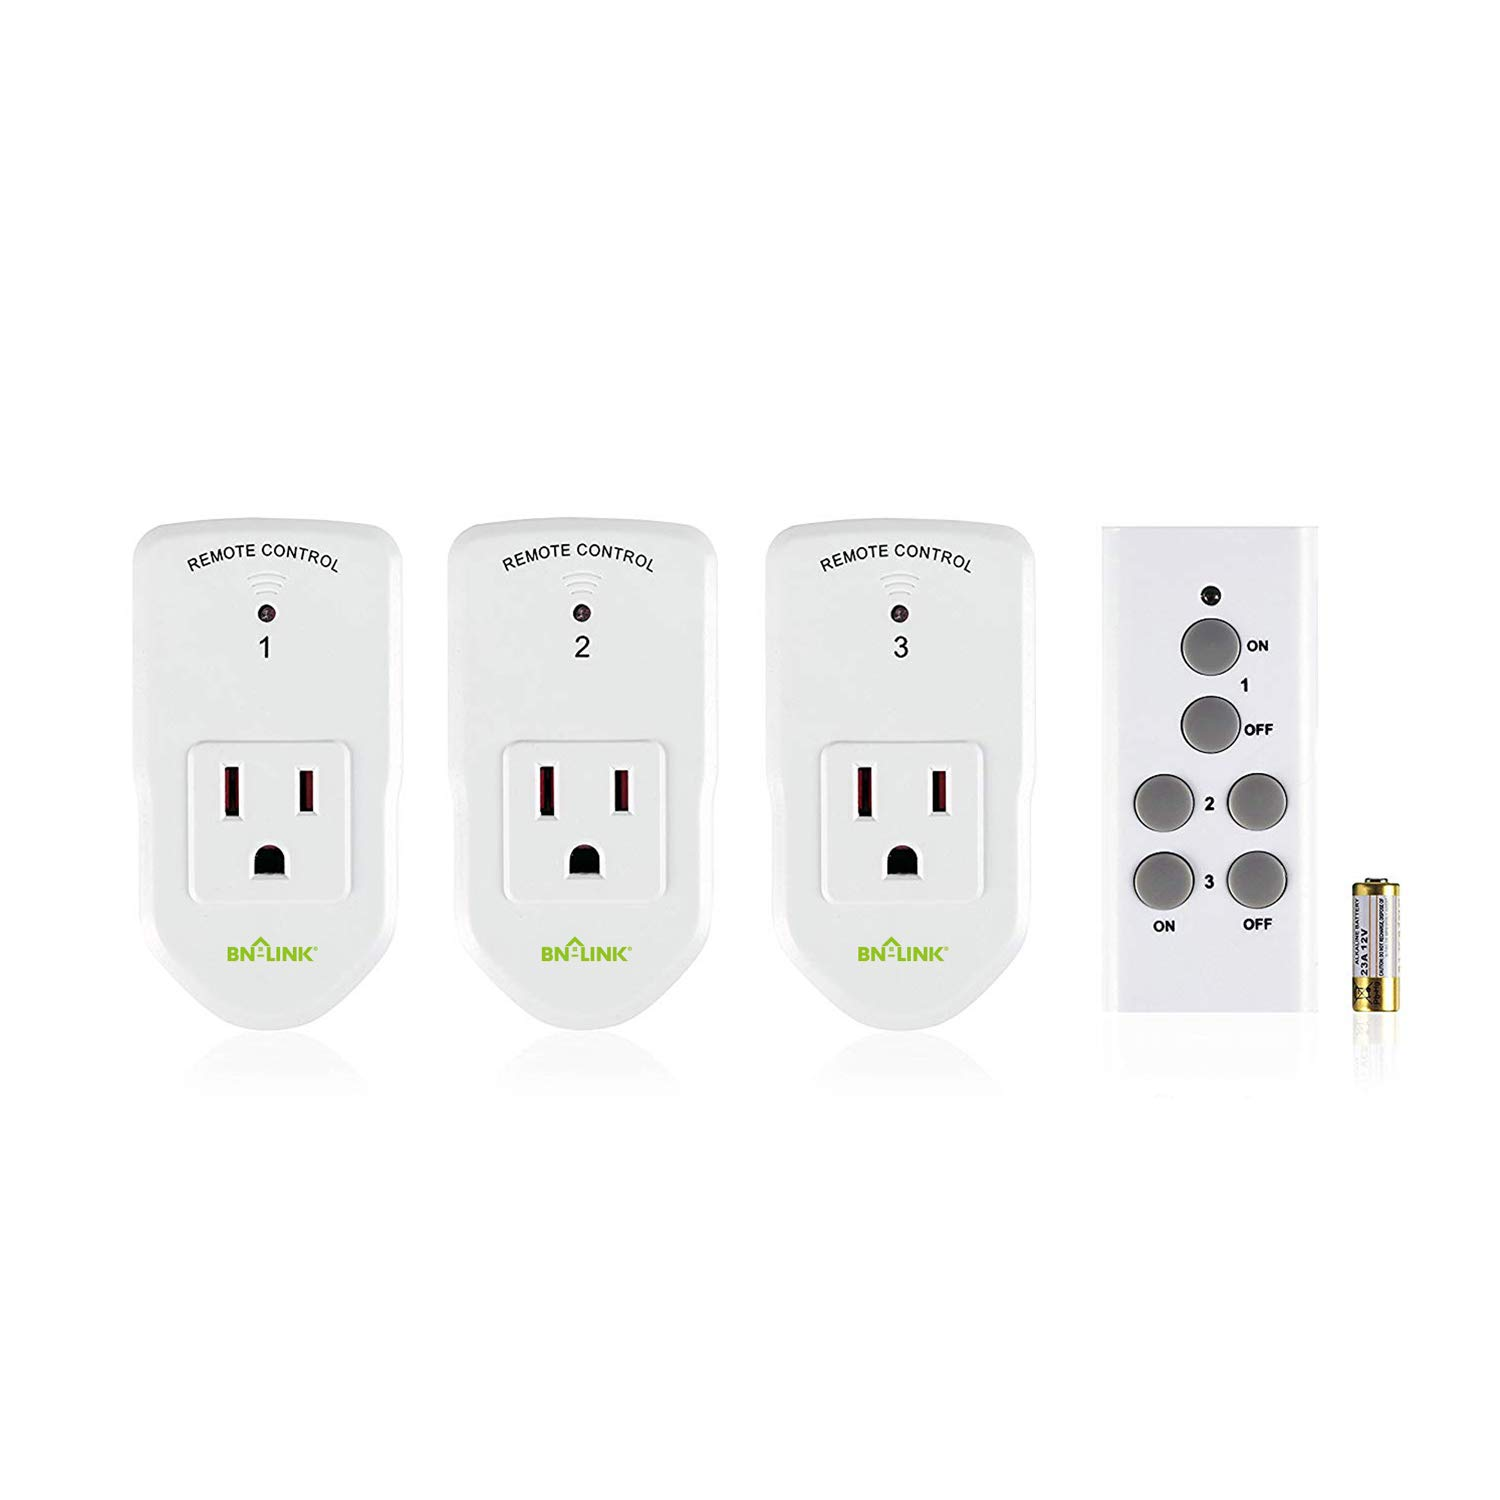 BN-LINK Wireless Remote Control Electrical Outlet Switch for Lights, Fans, Christmas Lights, Small Appliance, Long Range White (Learning Code, 3Rx-1Tx) 1200W/10A by BN-LINK